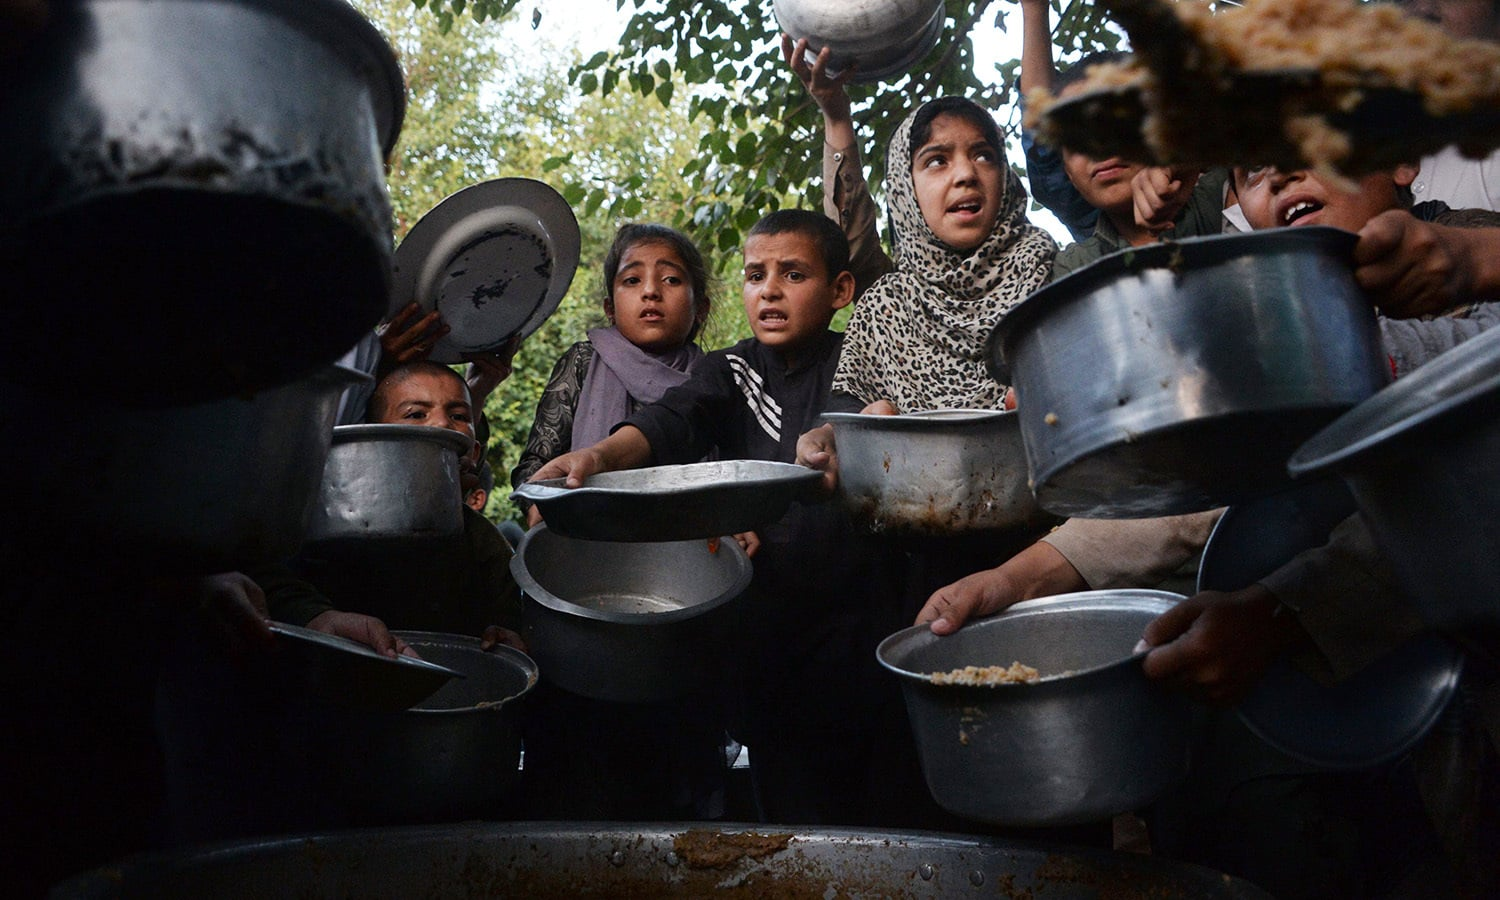 Afghan children hold dishes as they wait to receive food donated by a private charity in Jalalabad.— AFP